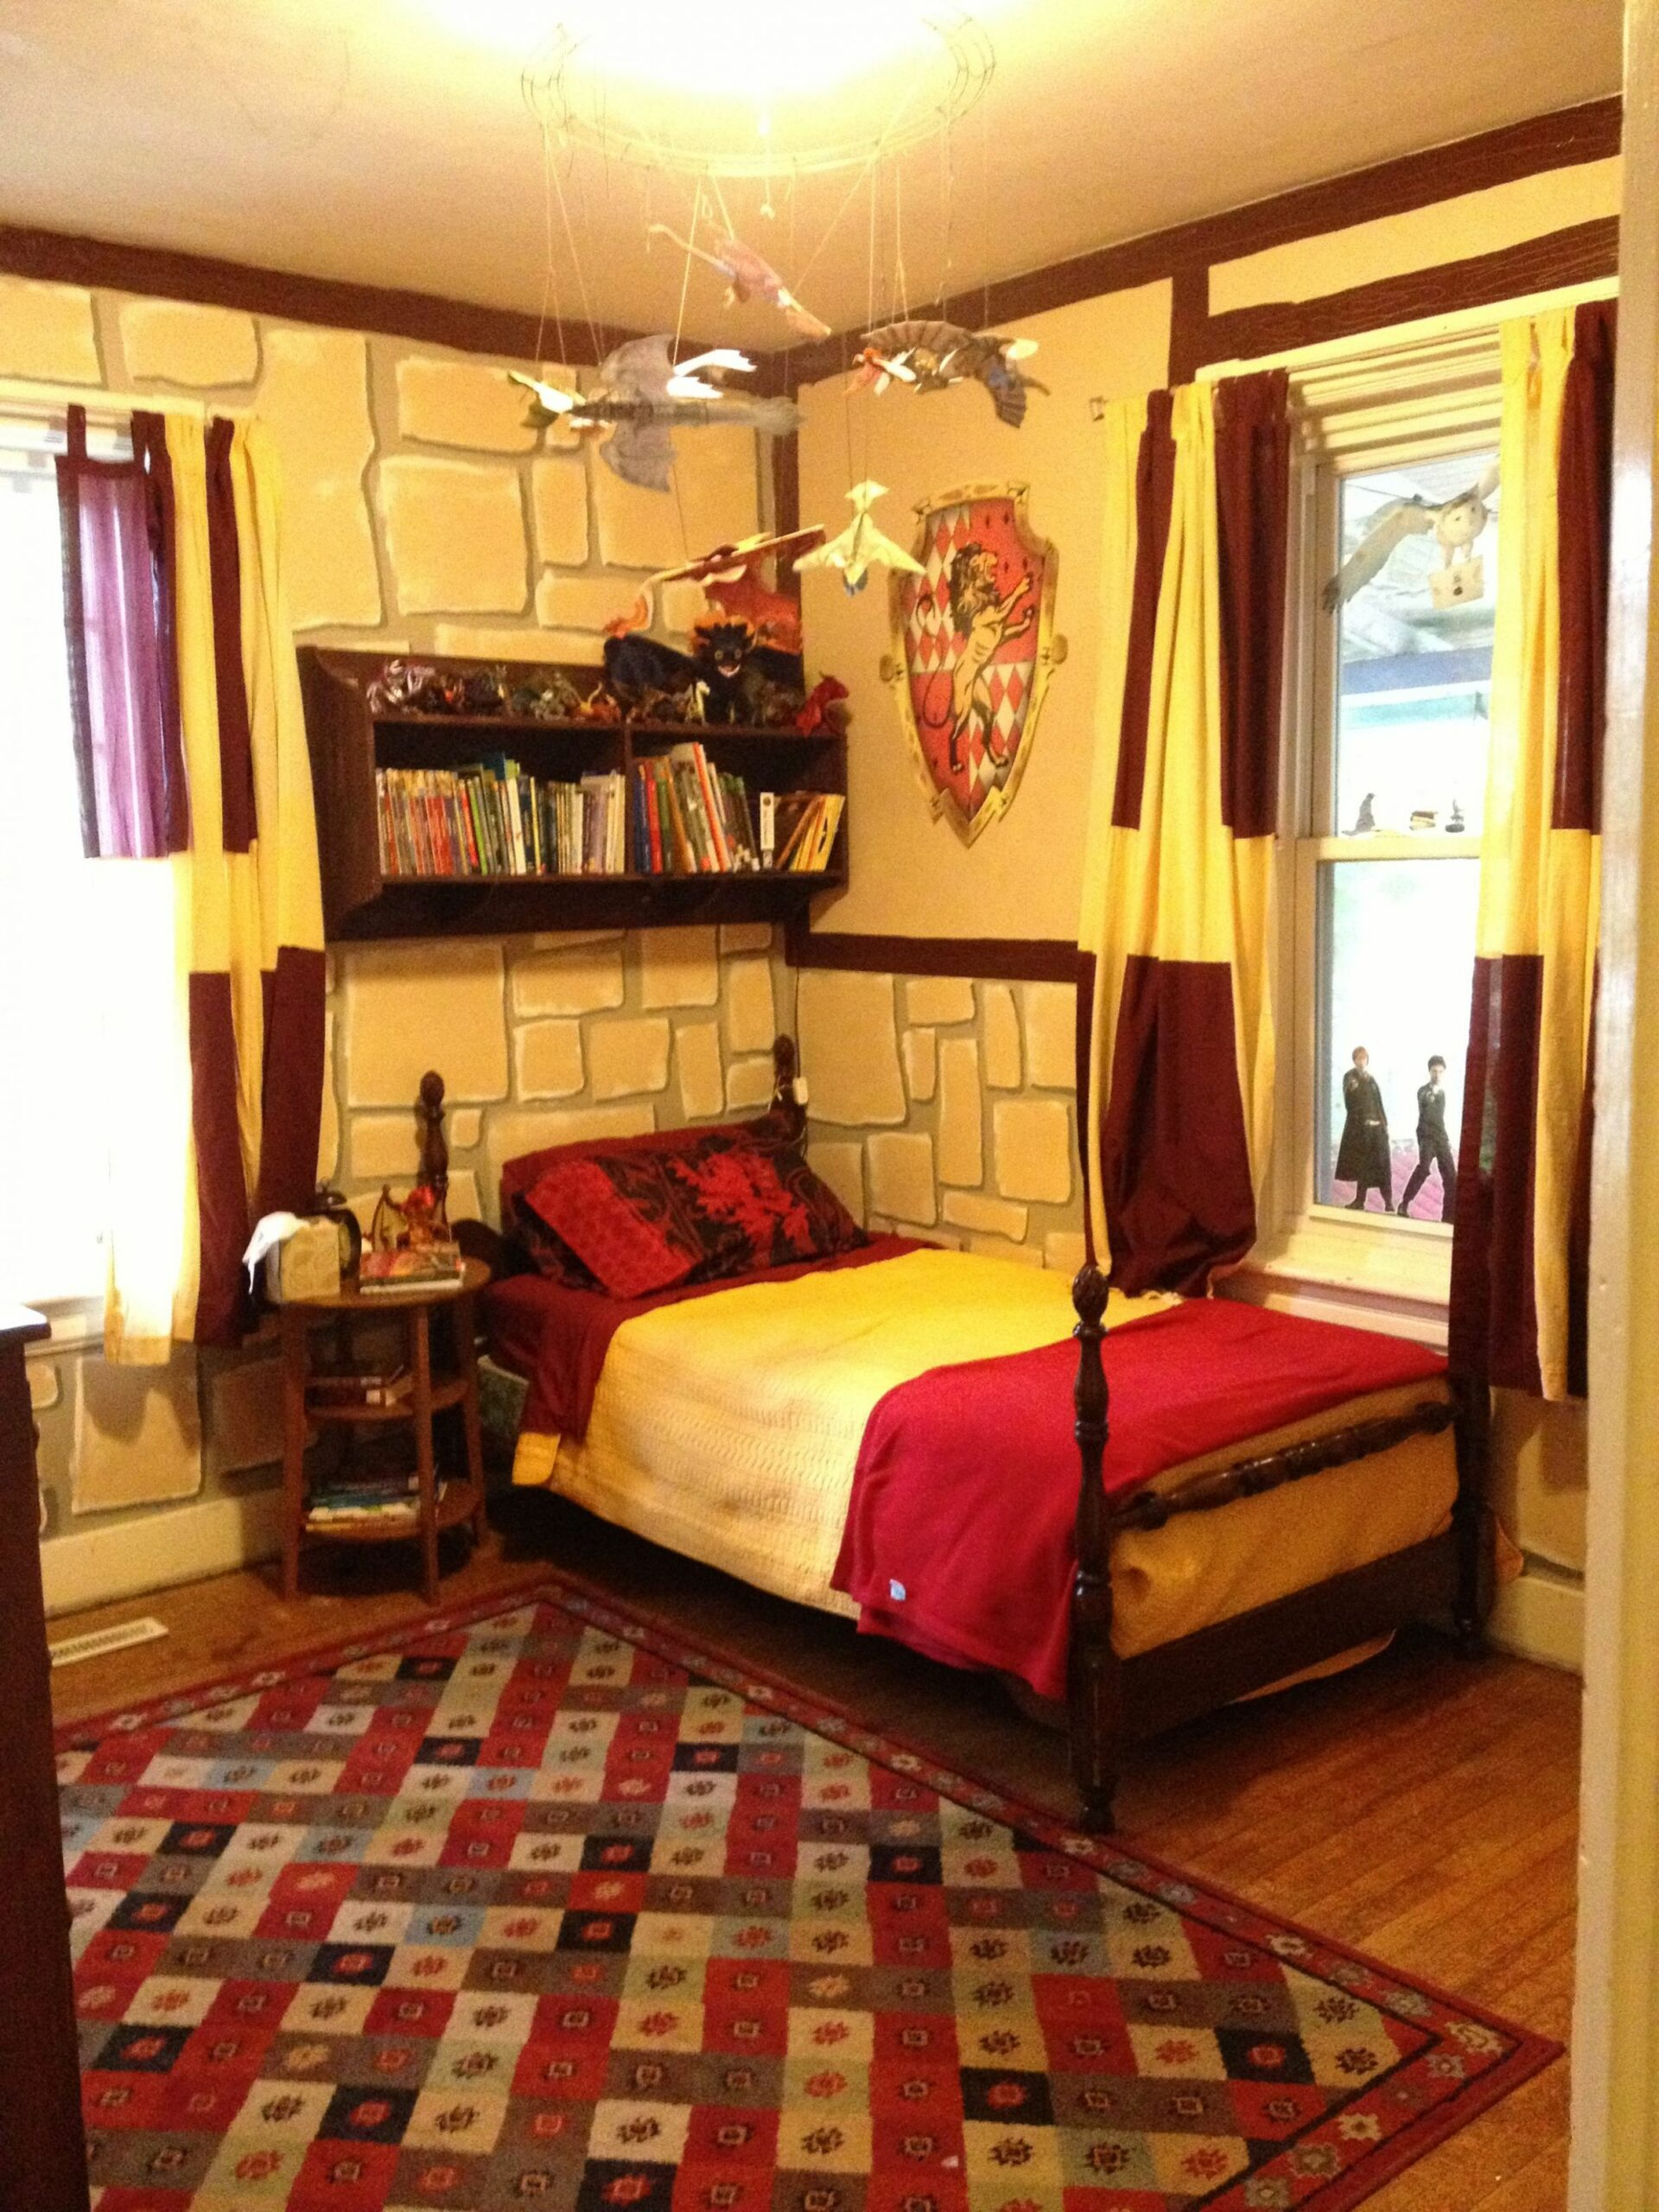 harry potter bedroom decor (With images) | Harry potter bedroom ..